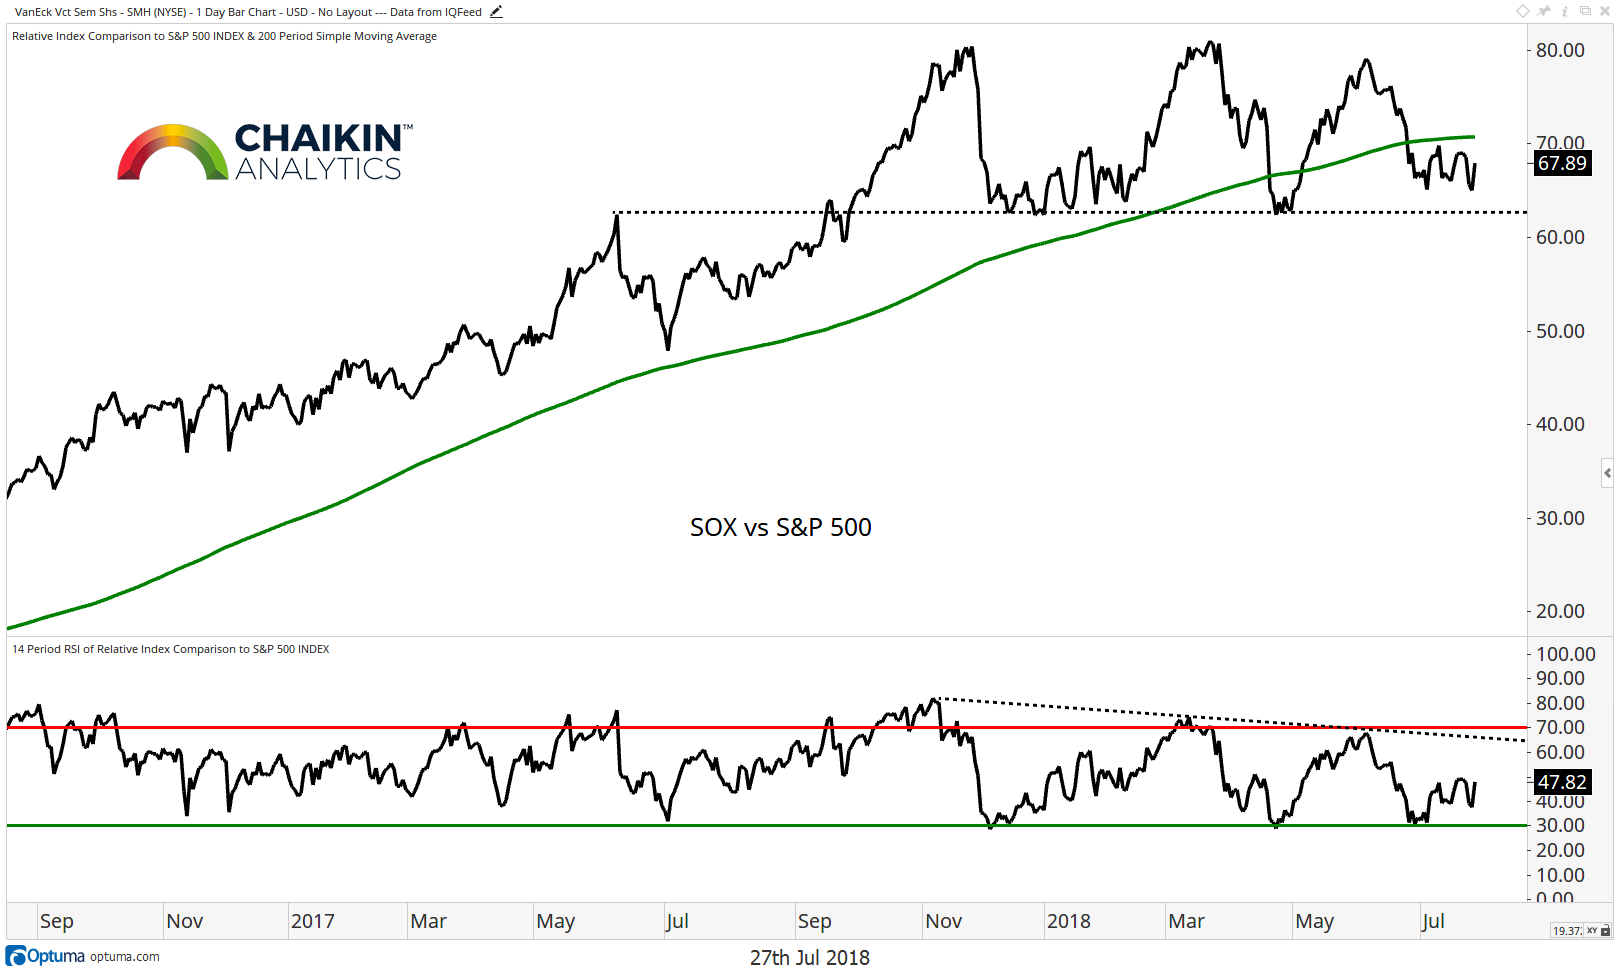 sox semiconductor stock index vs s&p 500 chart july 2018